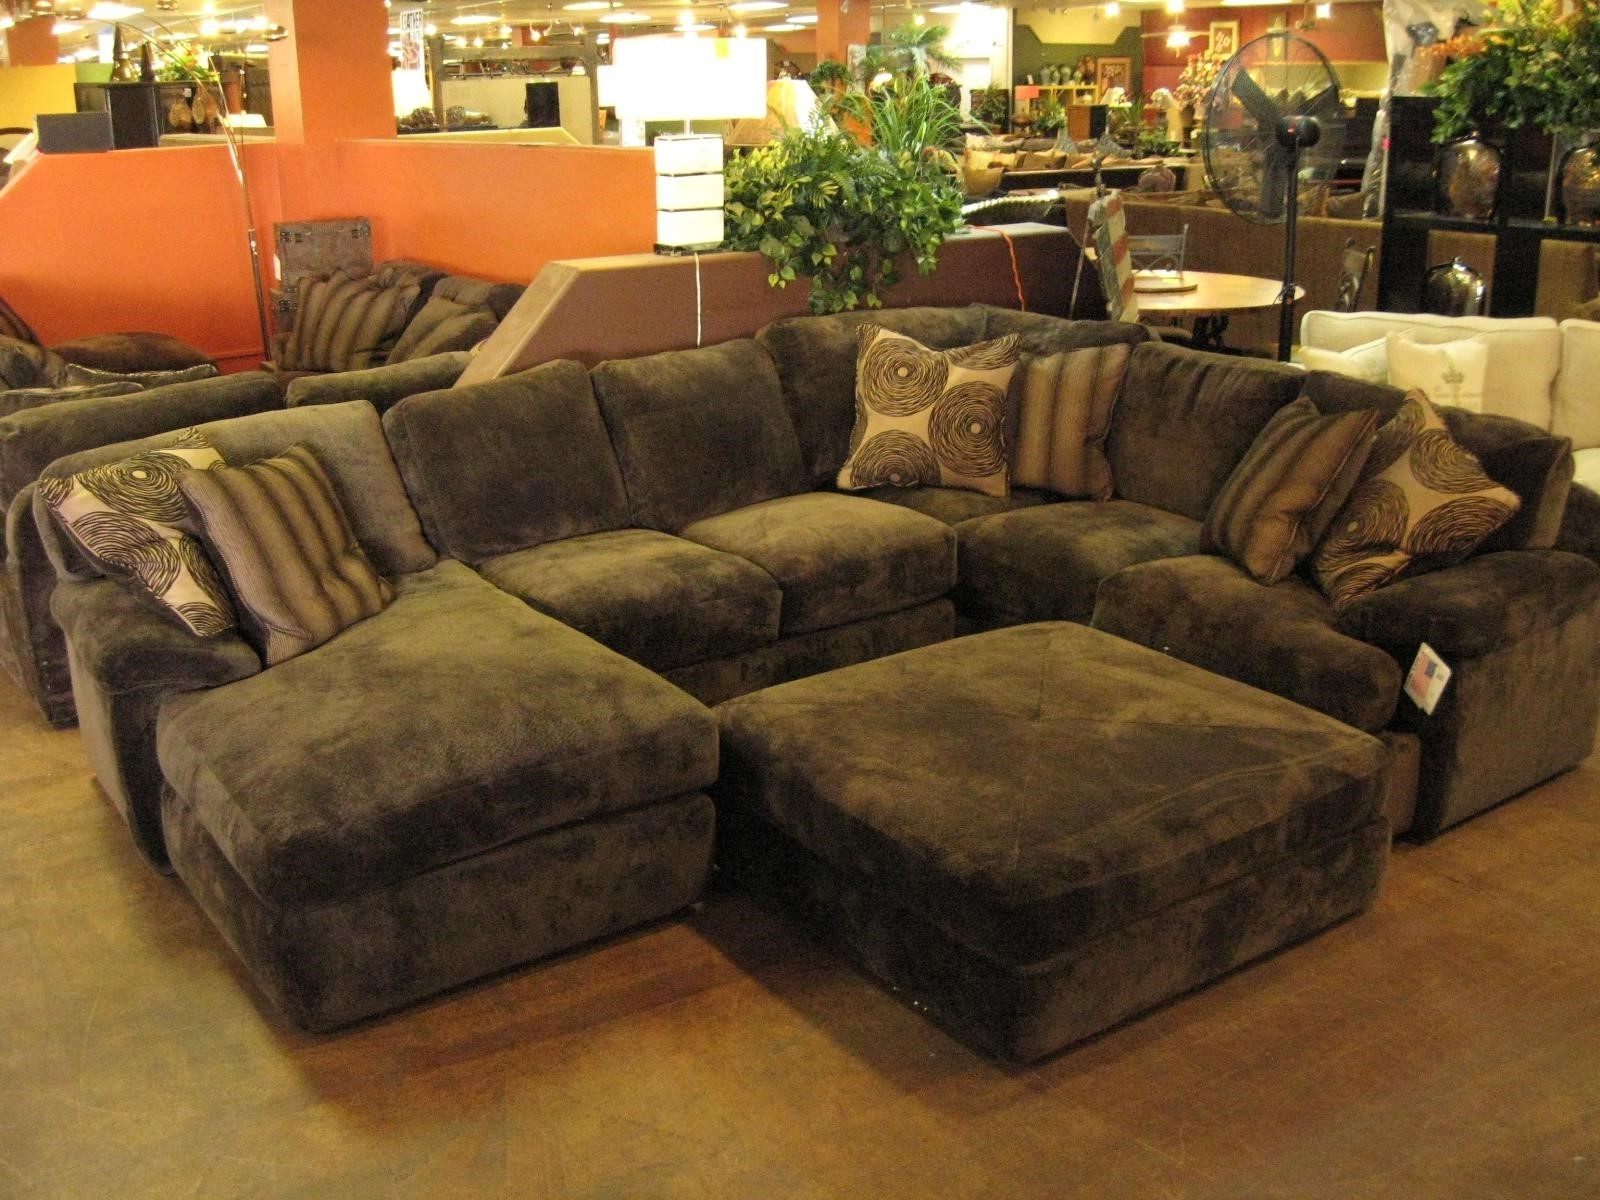 Sofas Marvelous Brown Sectional Couch Cheap For Large Sofa With Inside Most Up To Date Sectional Sofas With Chaise Lounge And Ottoman (View 15 of 20)